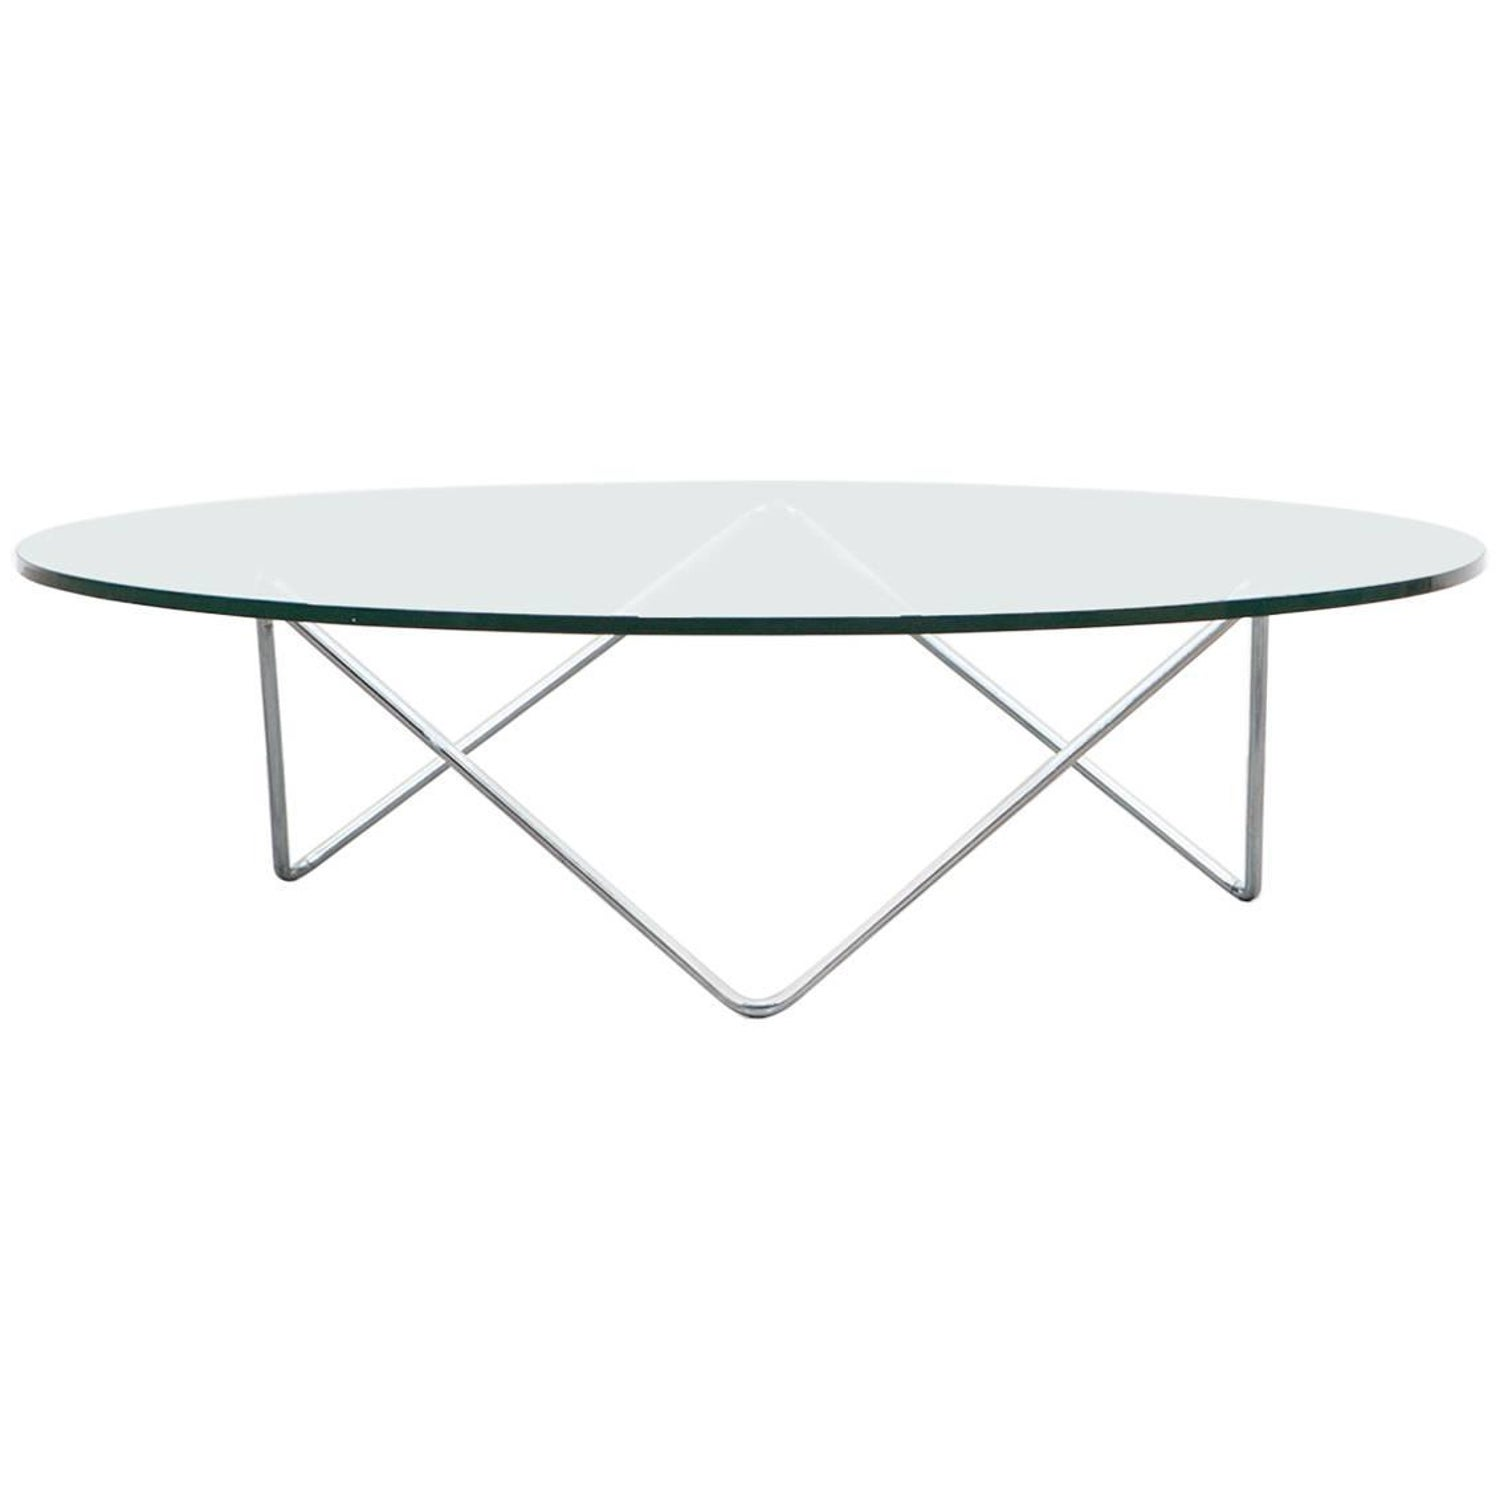 Herbert Hirche Coffee Table For Sale at 1stdibs